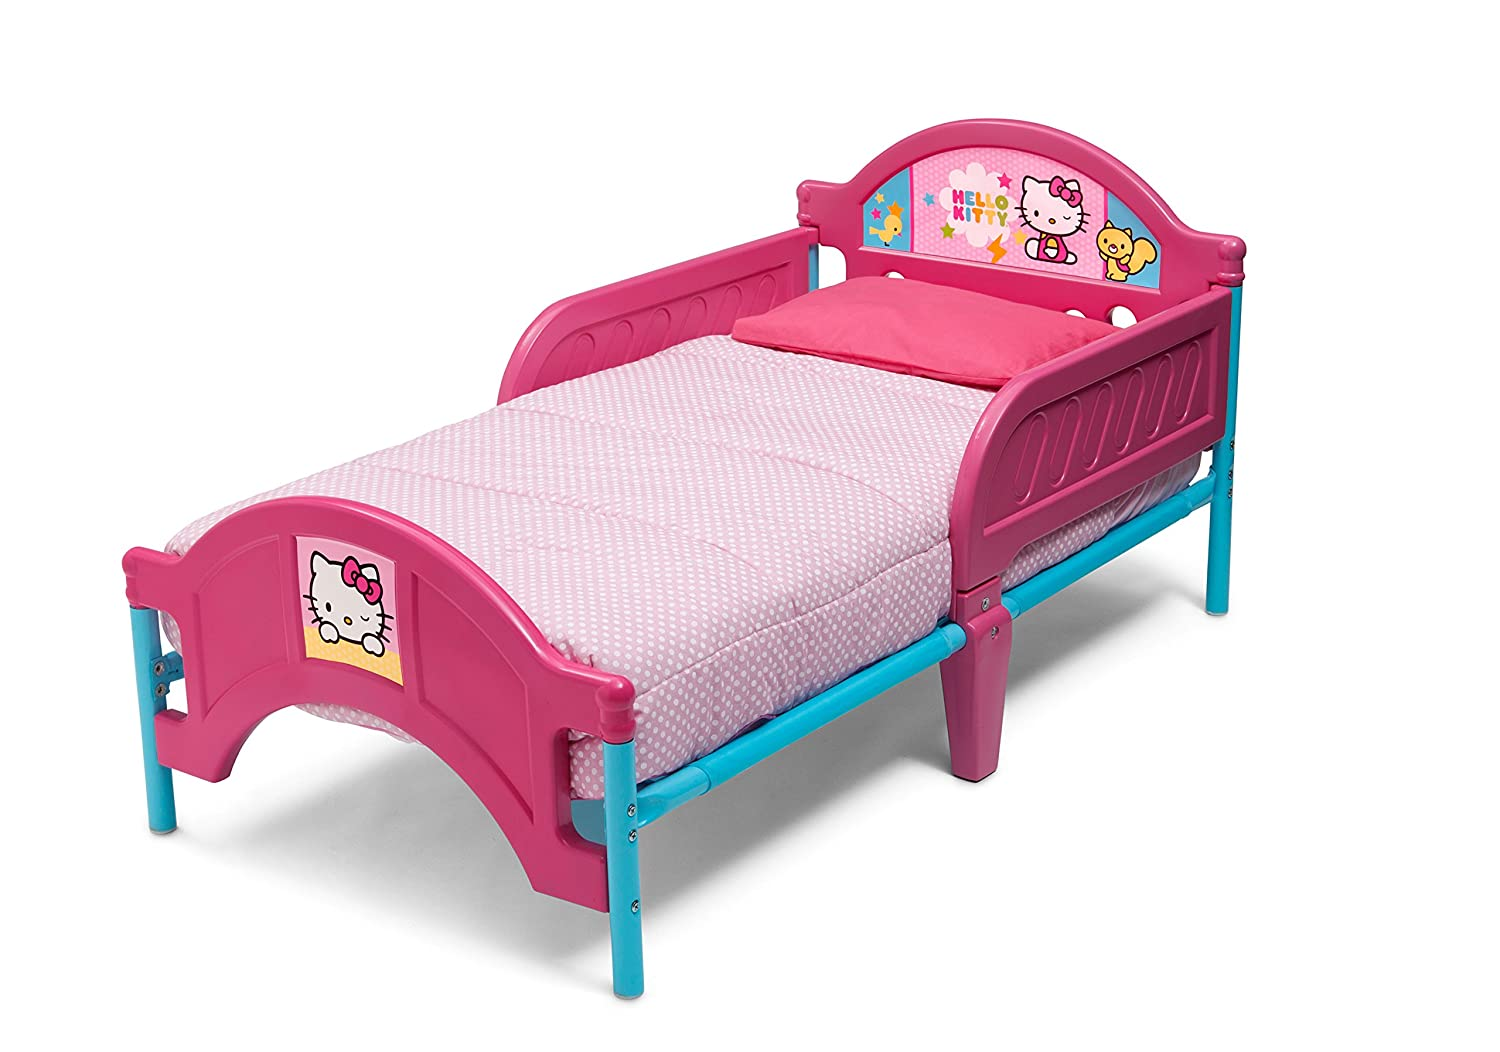 Hello kitty toddler bed frame - Hello Kitty Toddler Bed Frame 4